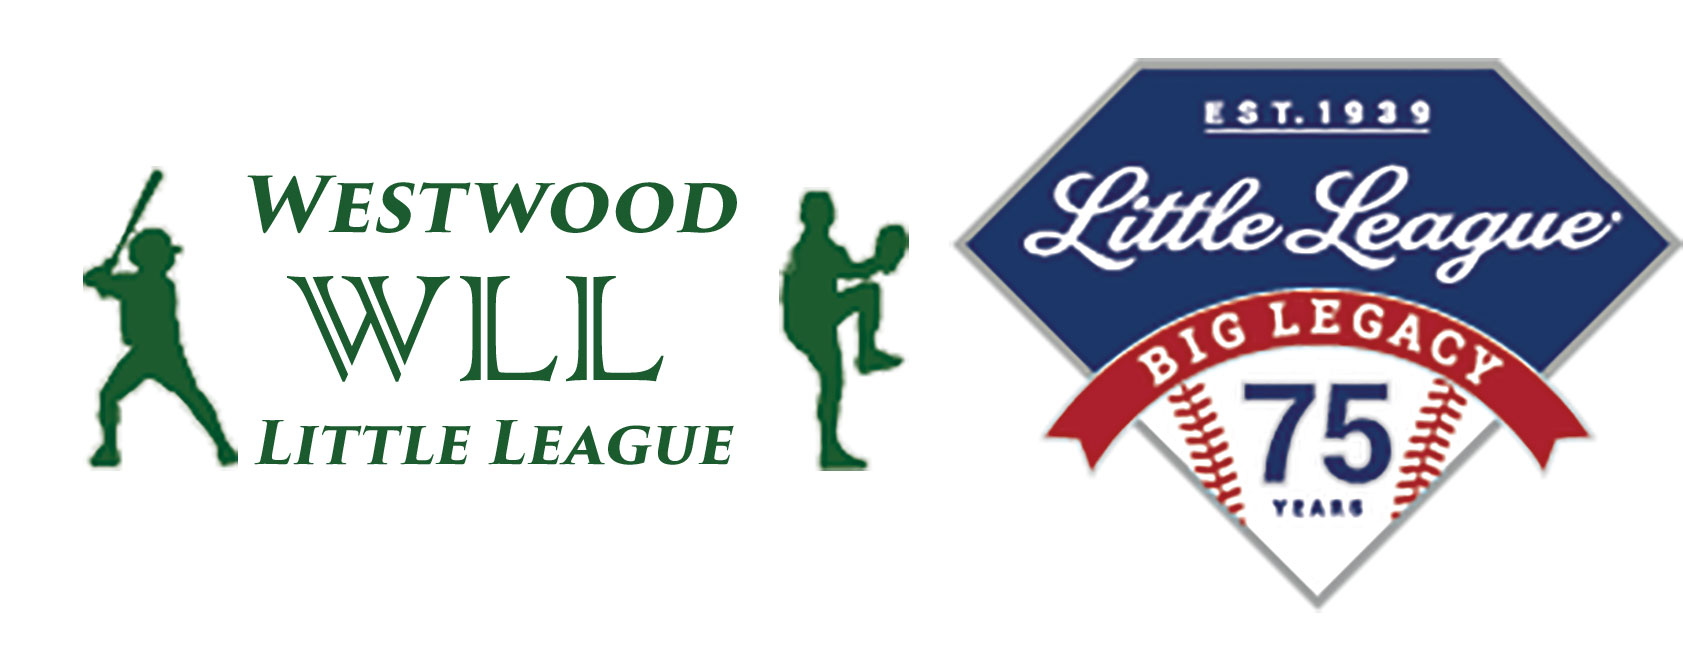 Westwood Little League, Baseball, Run, Field